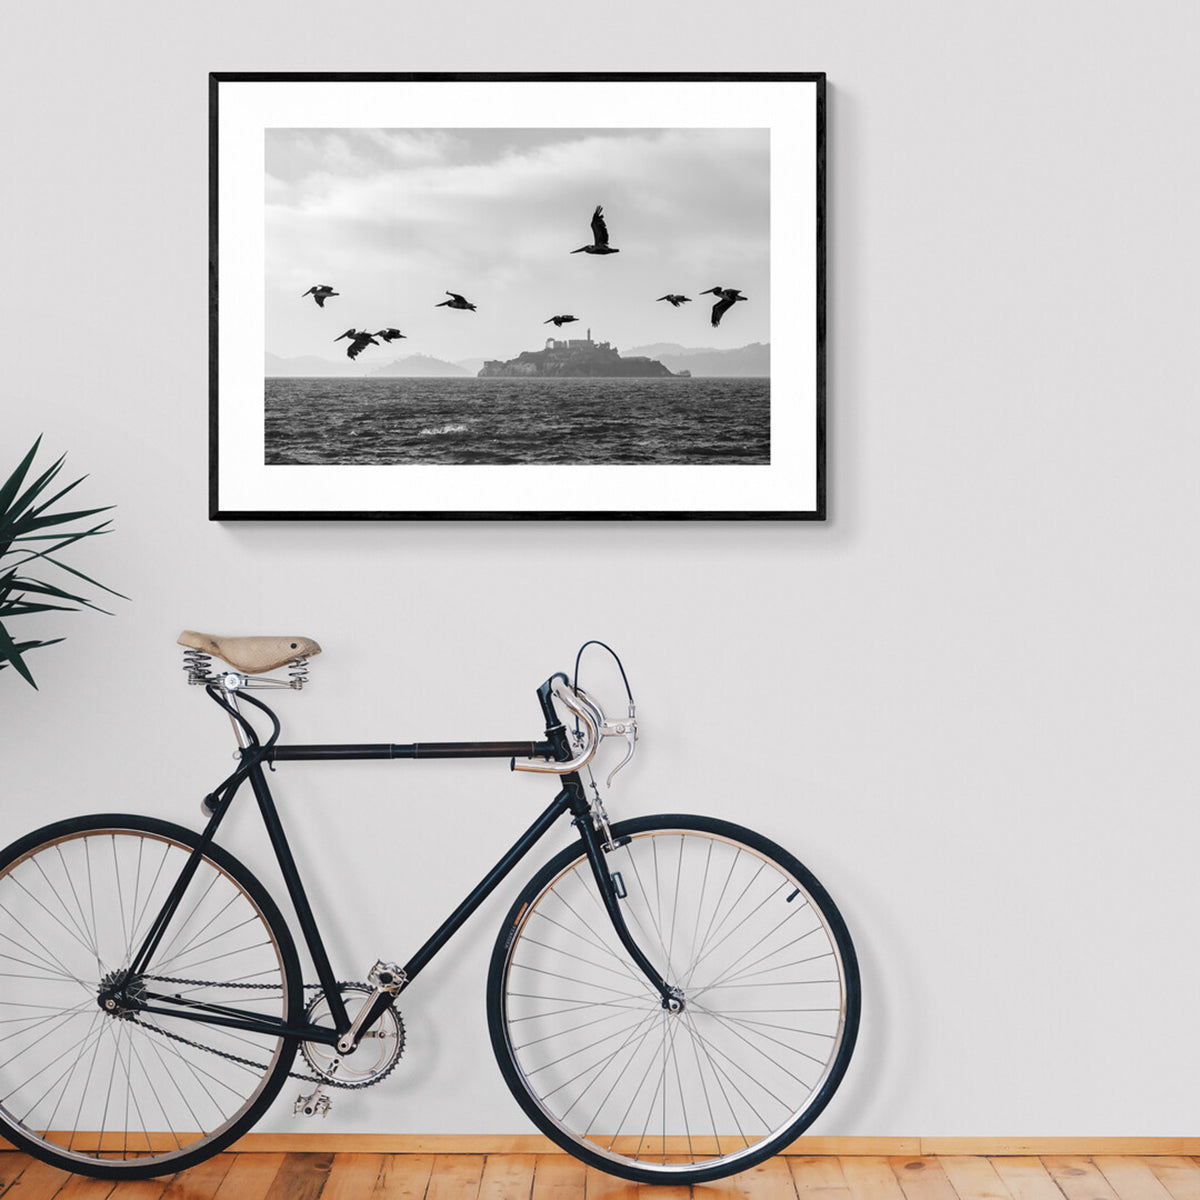 A framed black and white image of Pelicans flying with Alcatraz in the background and across the water.